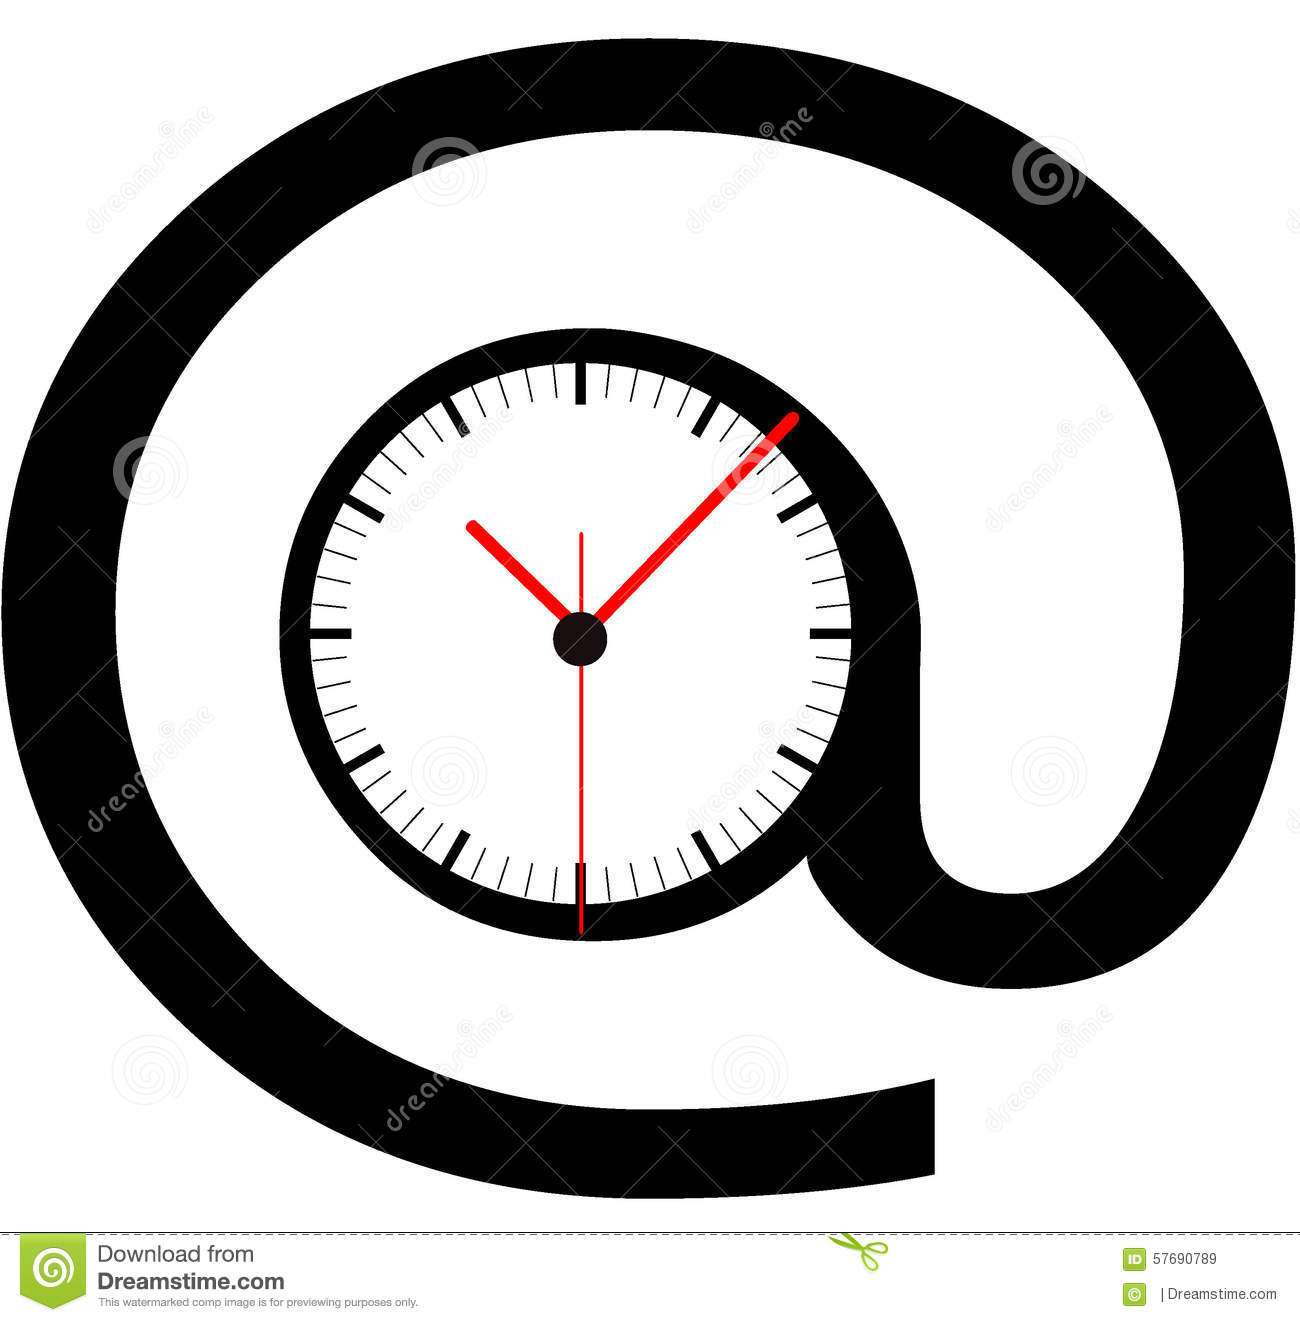 This is an image of Candid Clock Face Designs